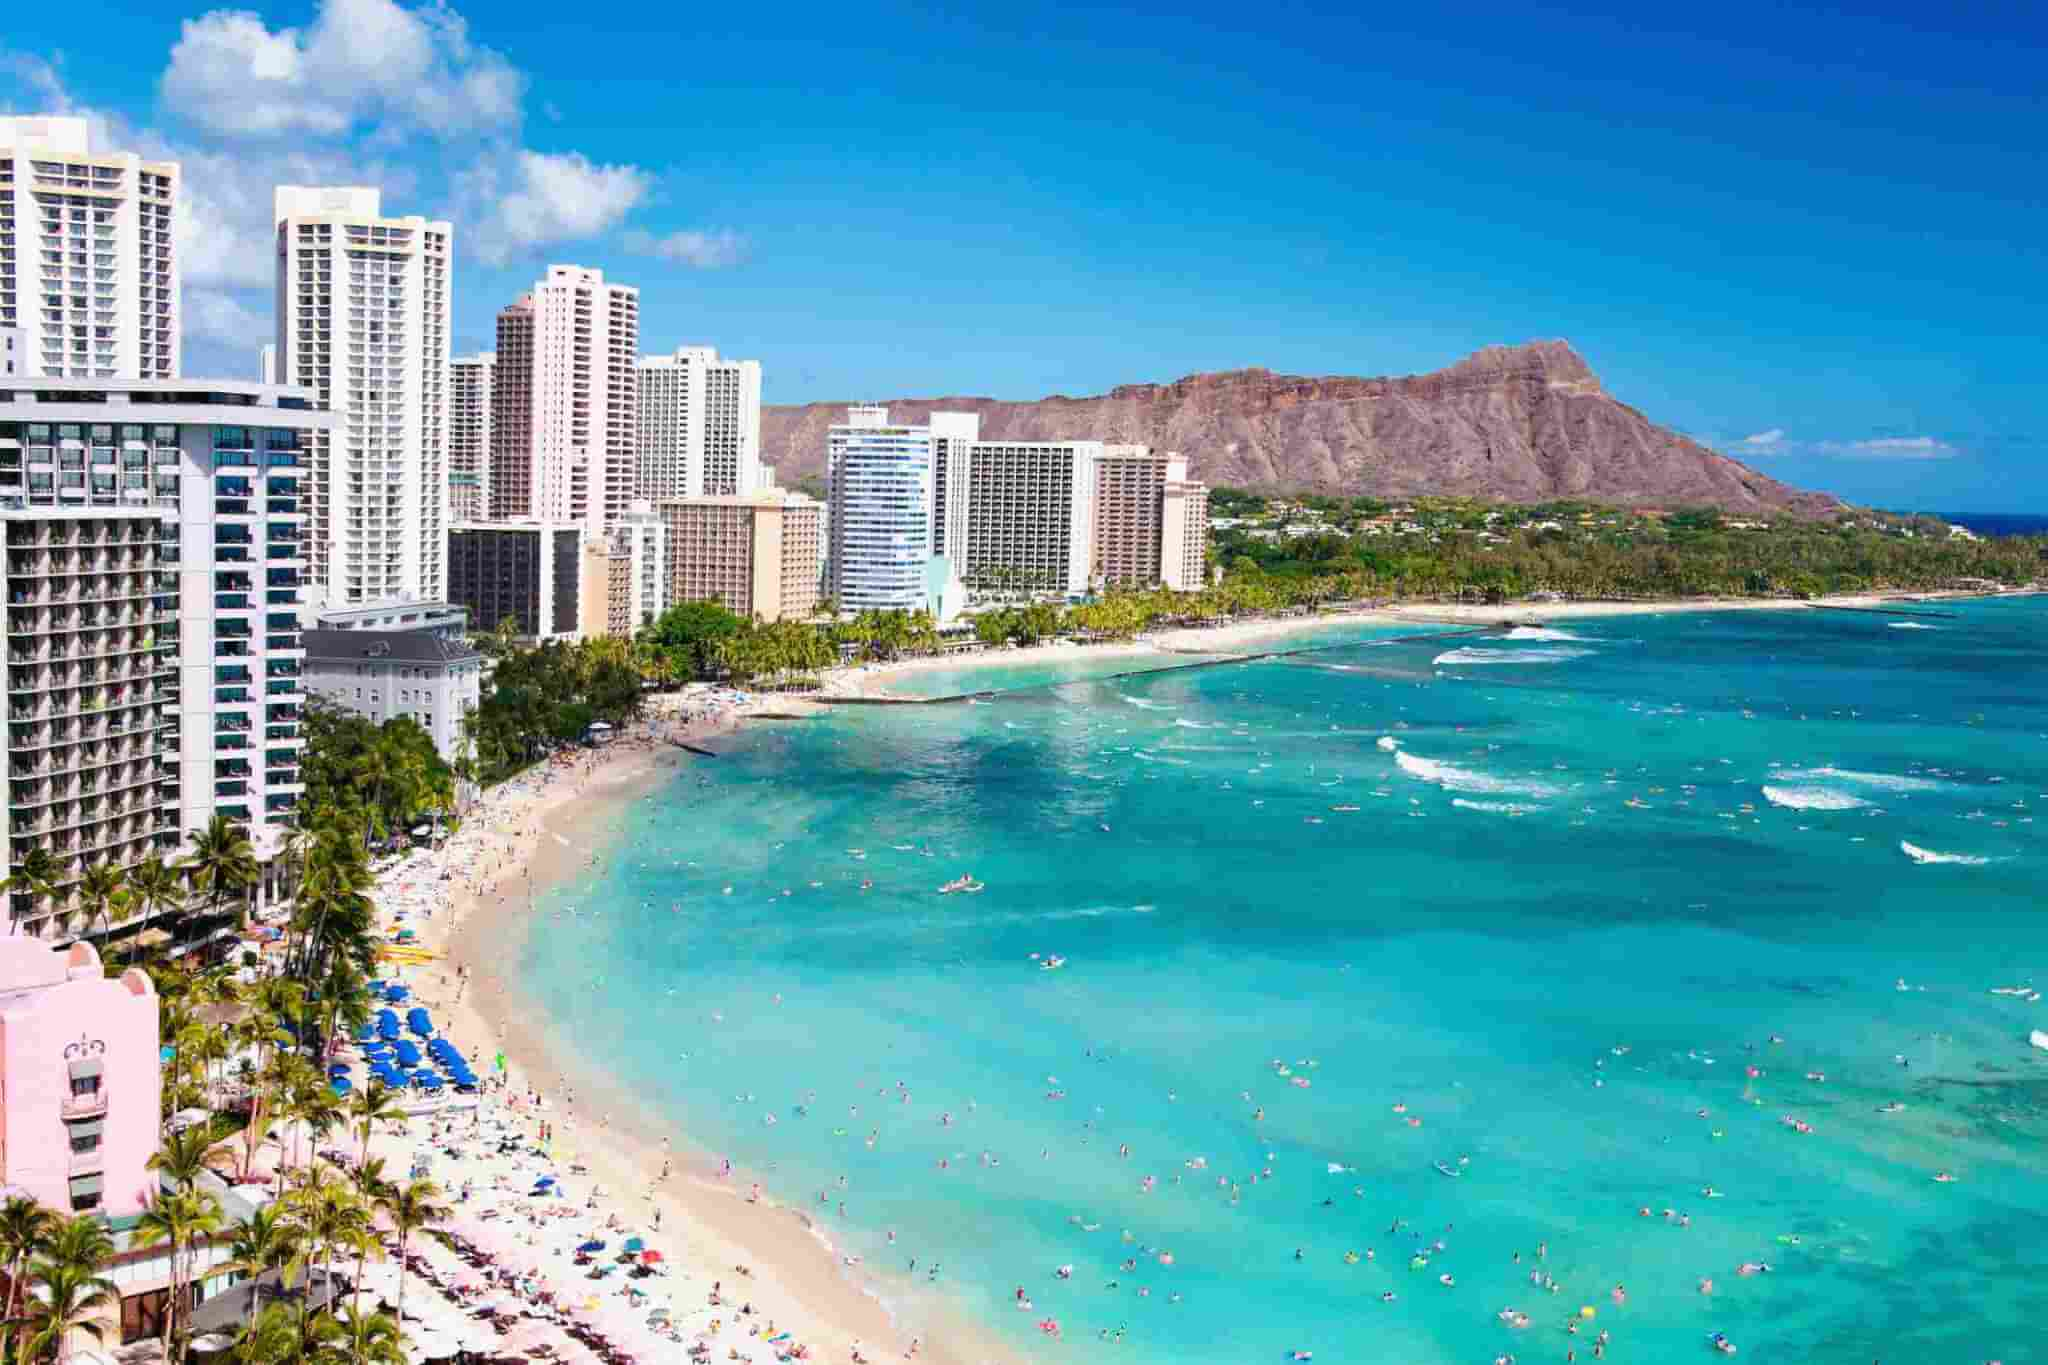 Hawaii Hotel Revenue Continues Downward Slide